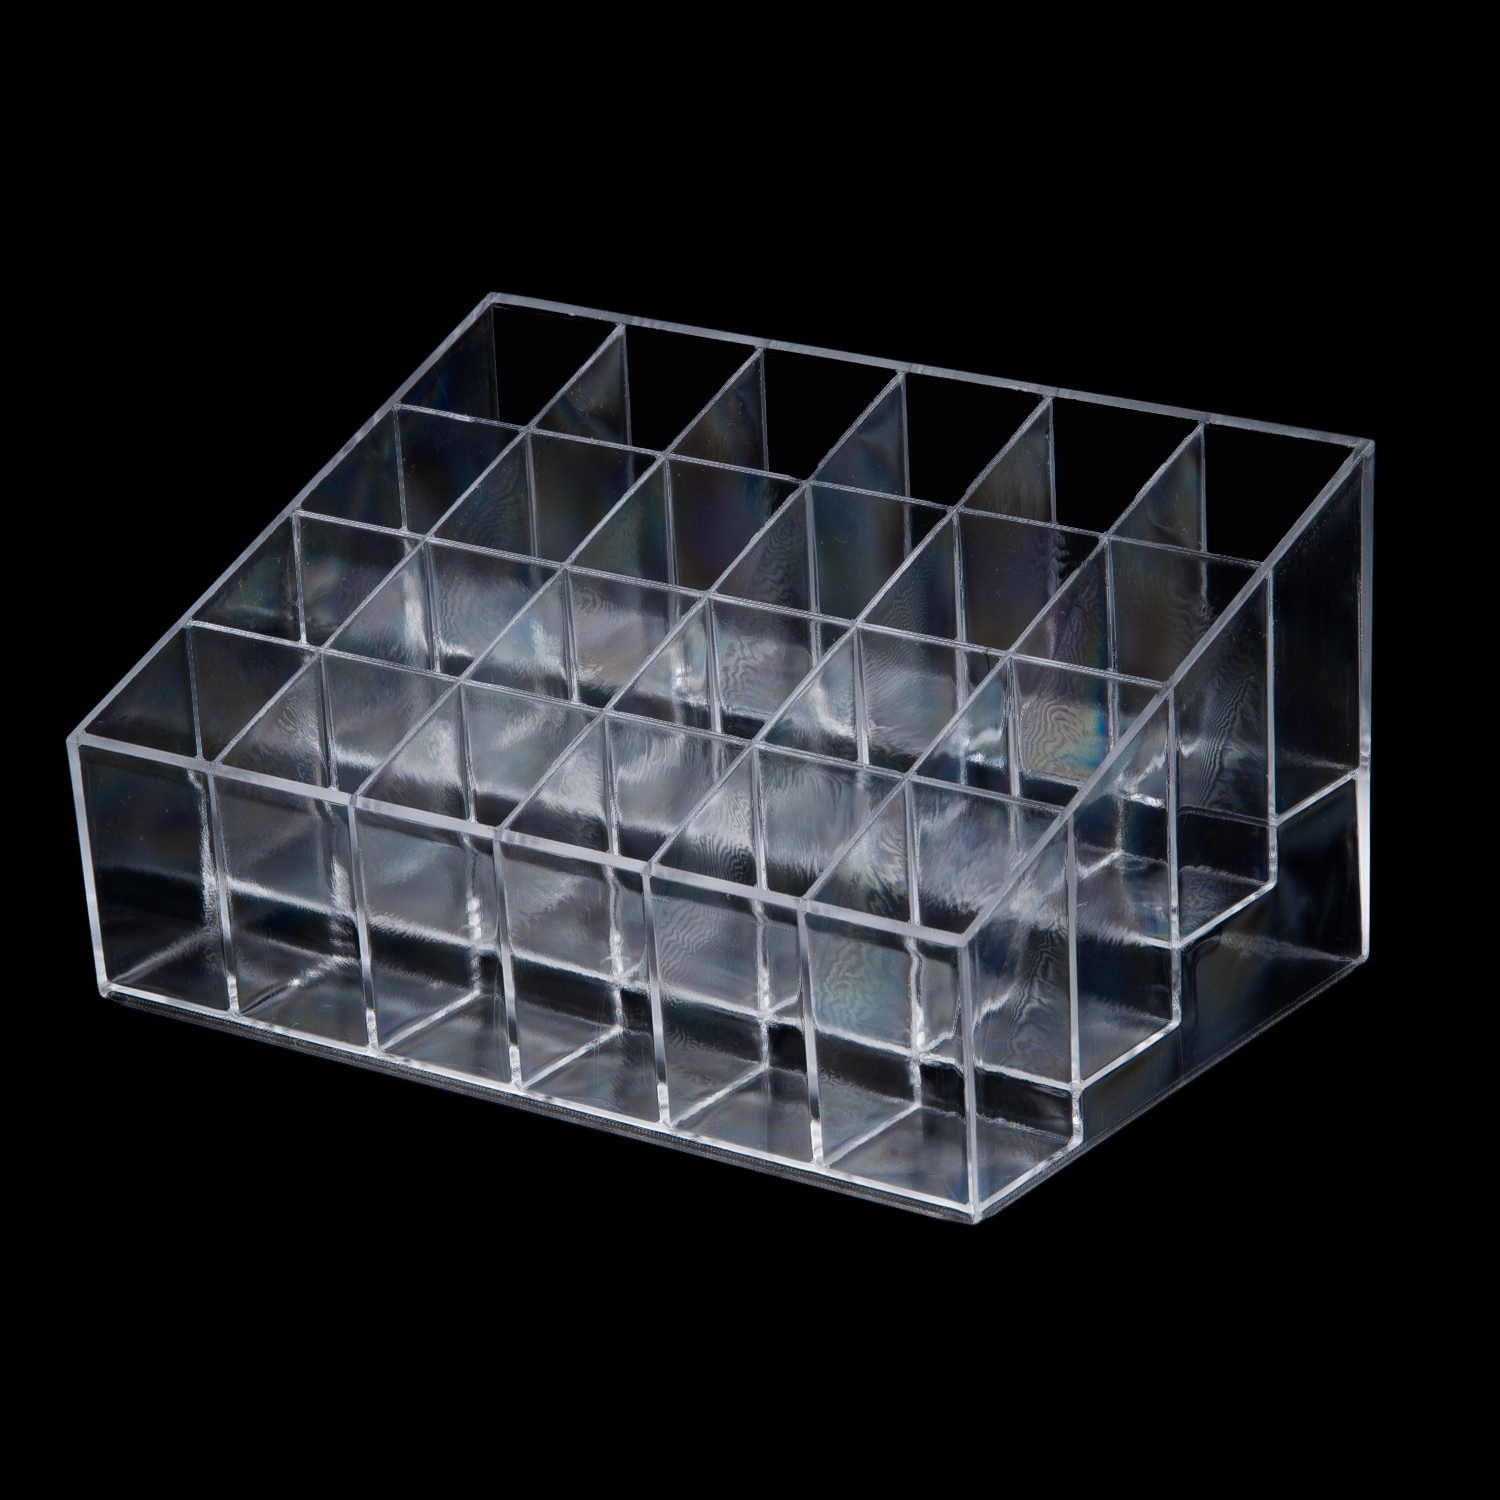 HOT Clear Transparent arylic Trapezoid Lipstick Holder Cosmetic Organizer/display/holder Organizer Stand ...